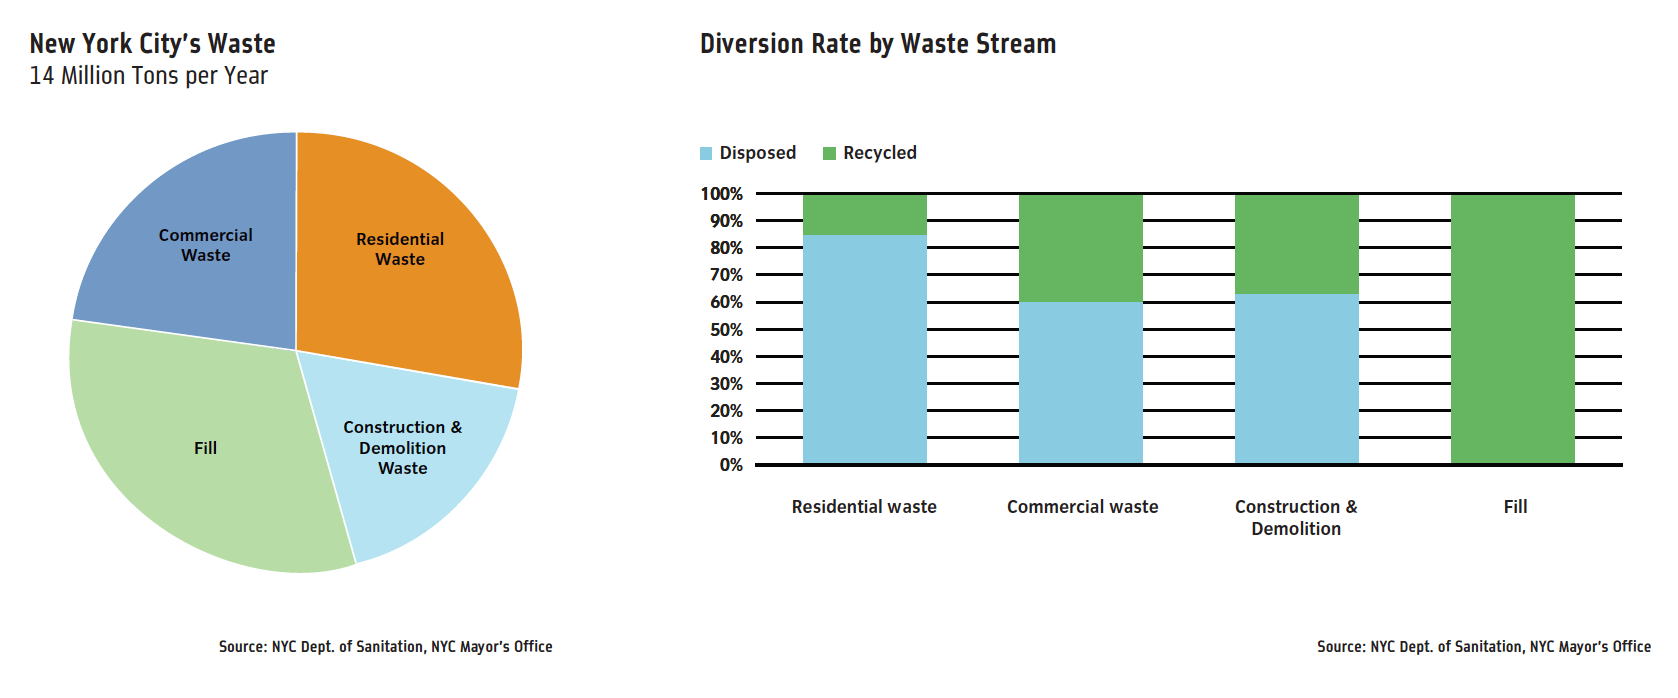 hight resolution of dual stream systems require a tiny extra effort compared to single stream ones but even that is enough to discourage some from recycling properly